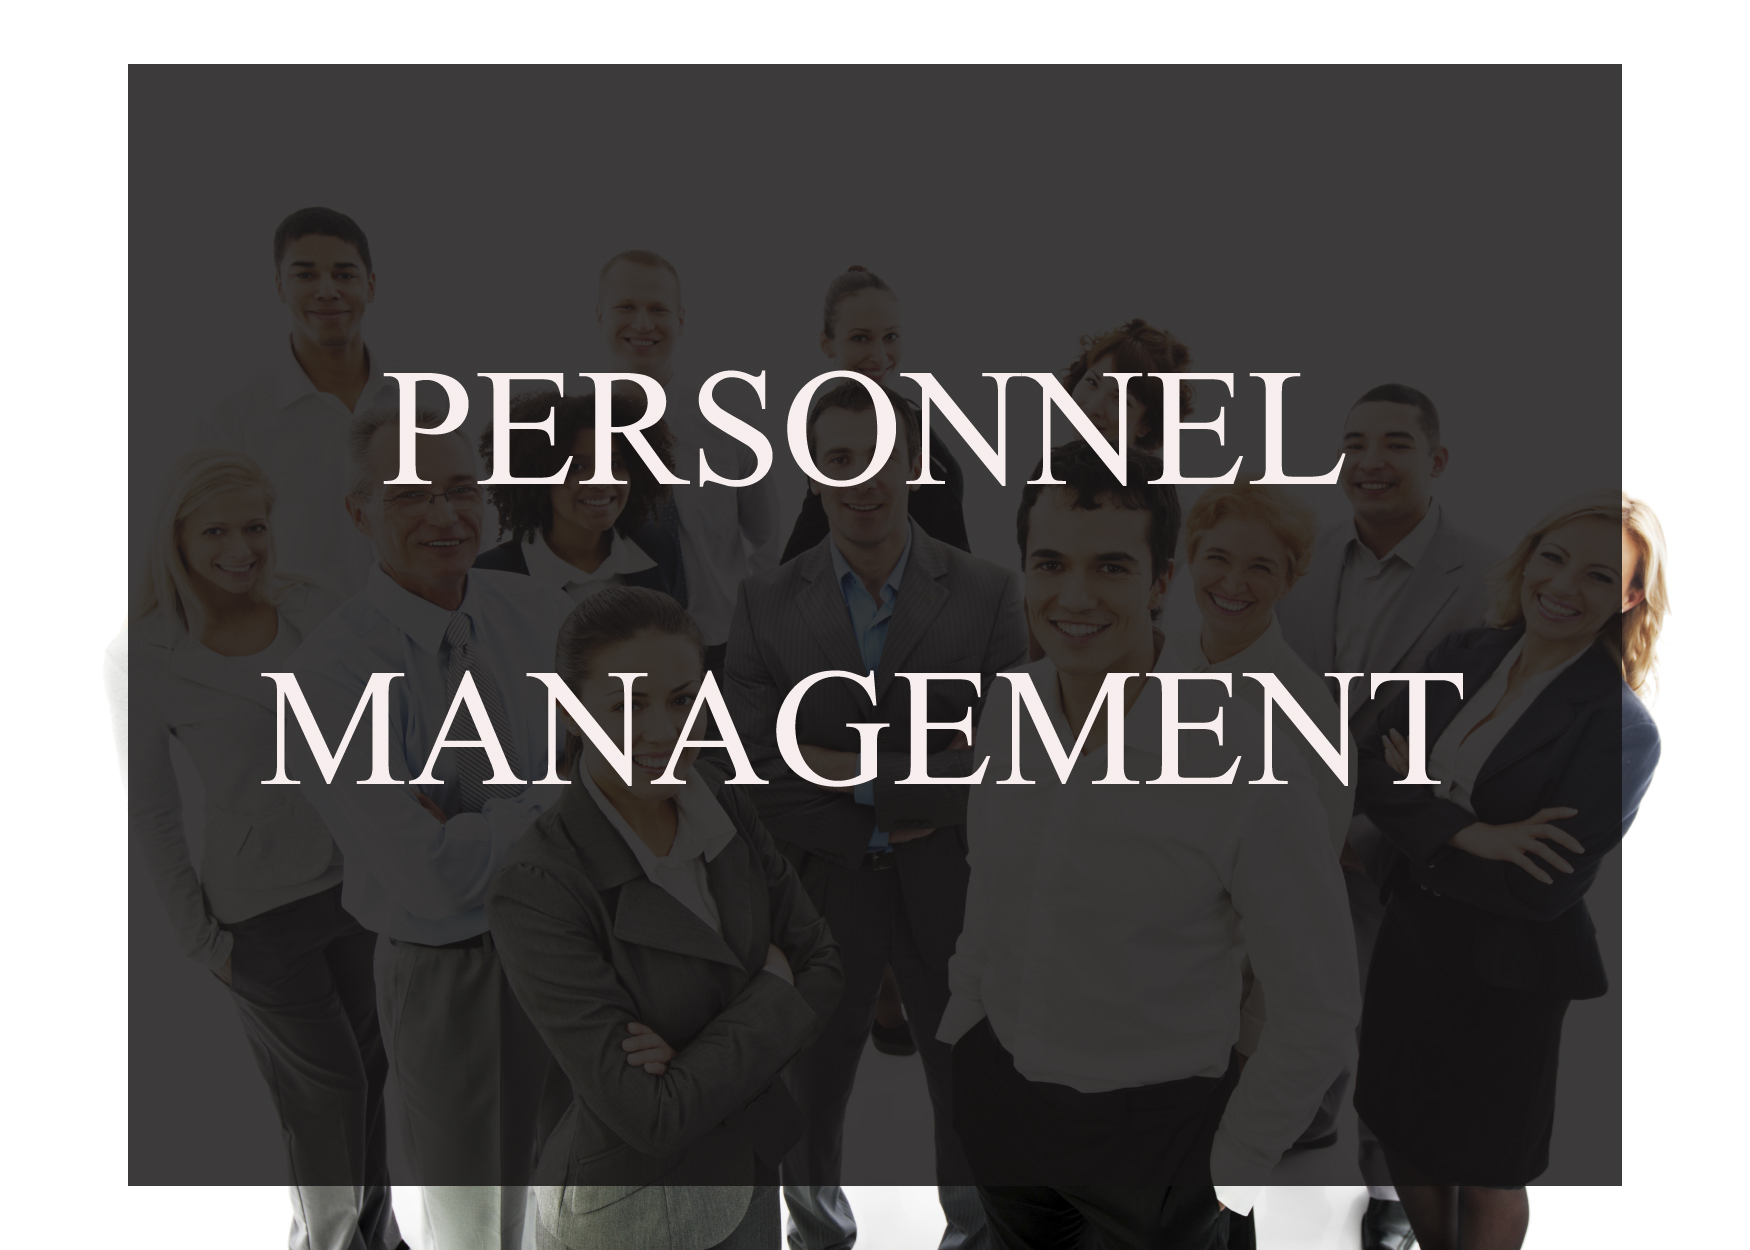 Simplynotes - Personnel Management - Complete Notes on